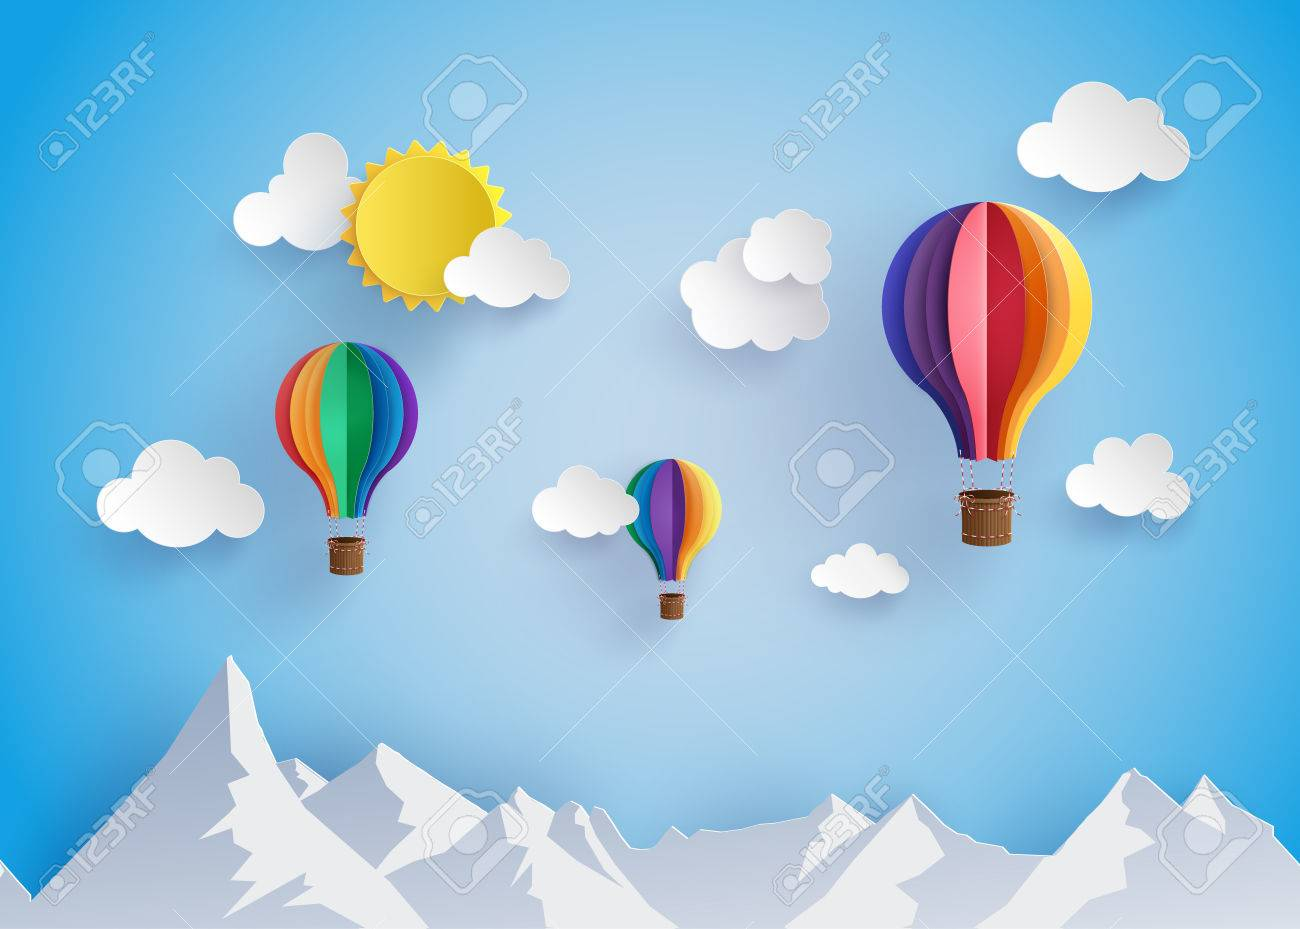 Origami made colorful hot air balloon flyin over moutain with cloud.paper art style. - 63619556